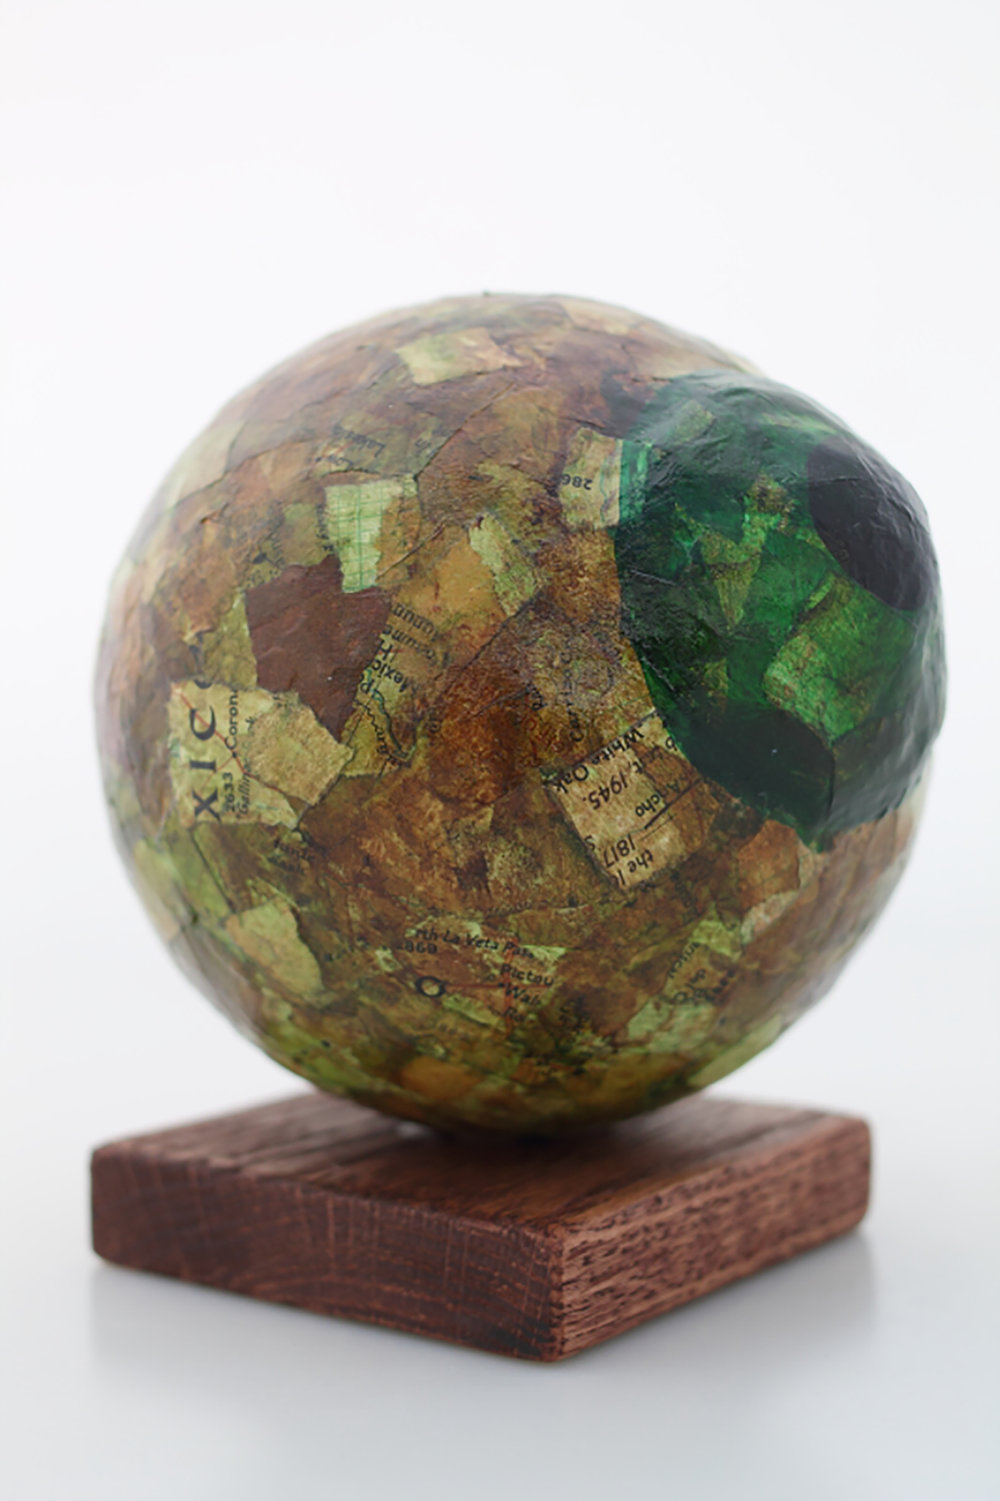 Gazing Eye  Papier maché and wood  5 x 5 x 5 inches  2016